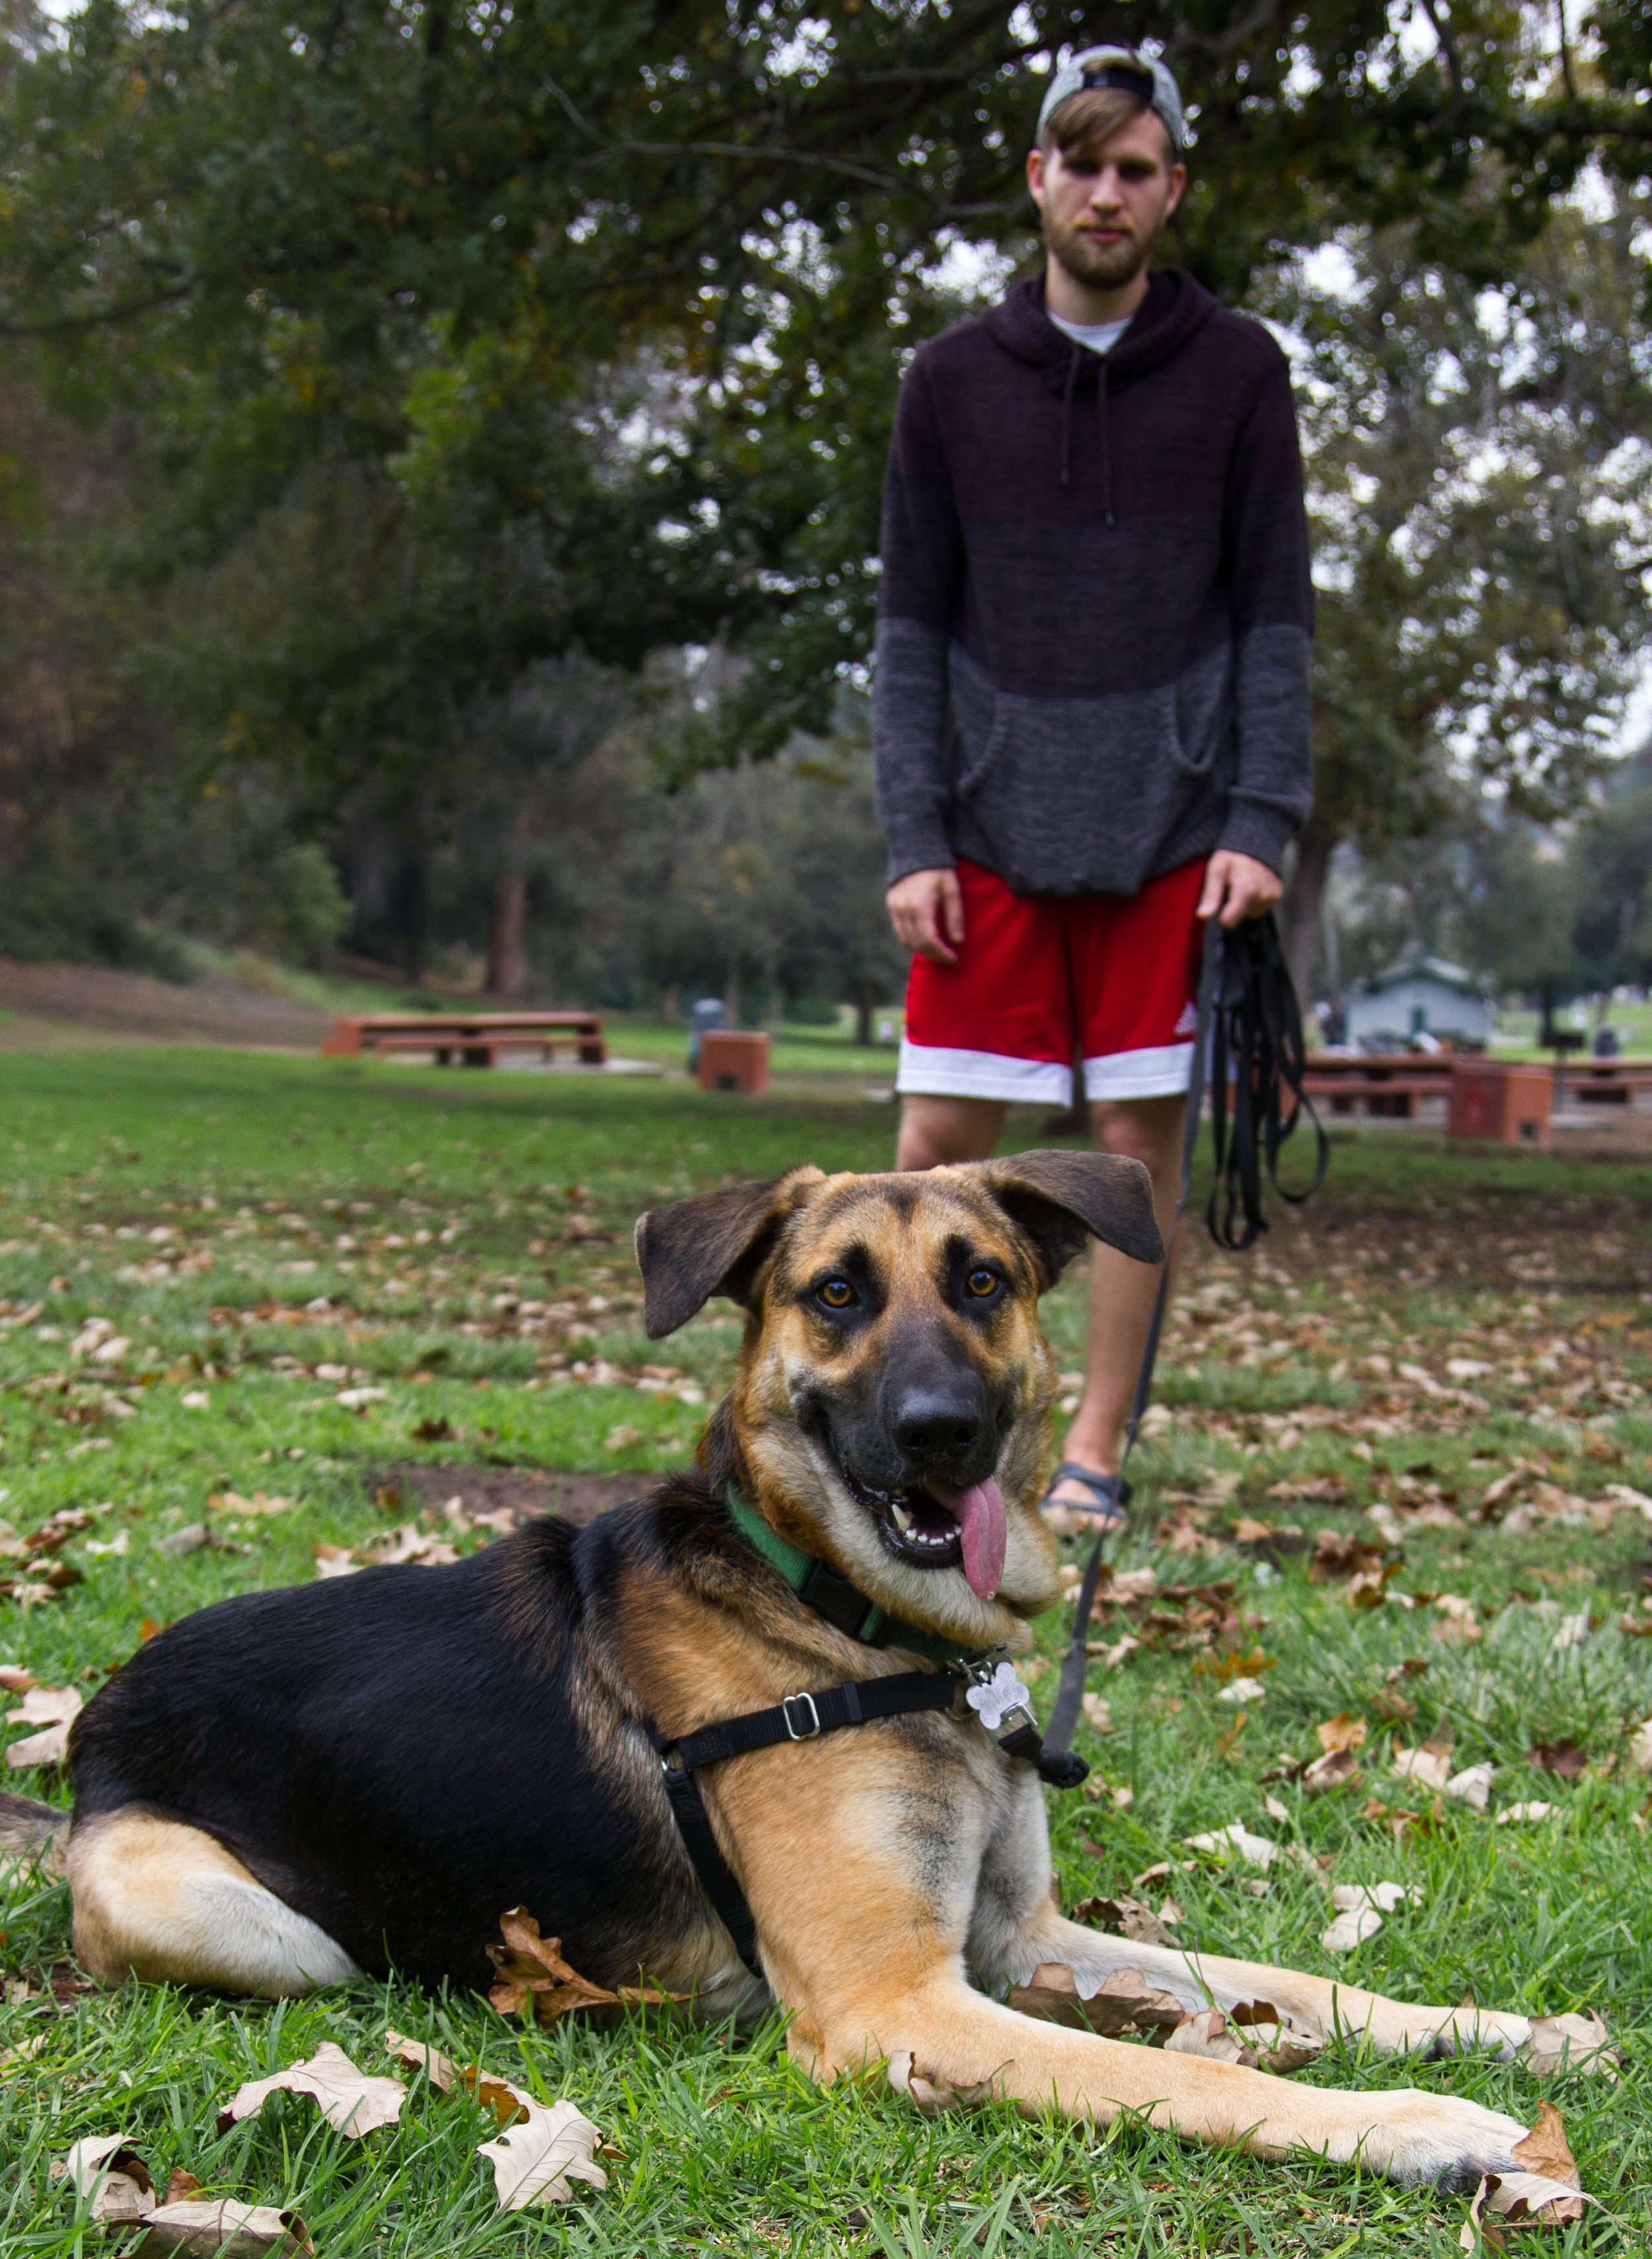 A German Shepherd taking obedience training with Dog Savvy Los Angeles, a private dog and puppy training company based in Los Angeles.